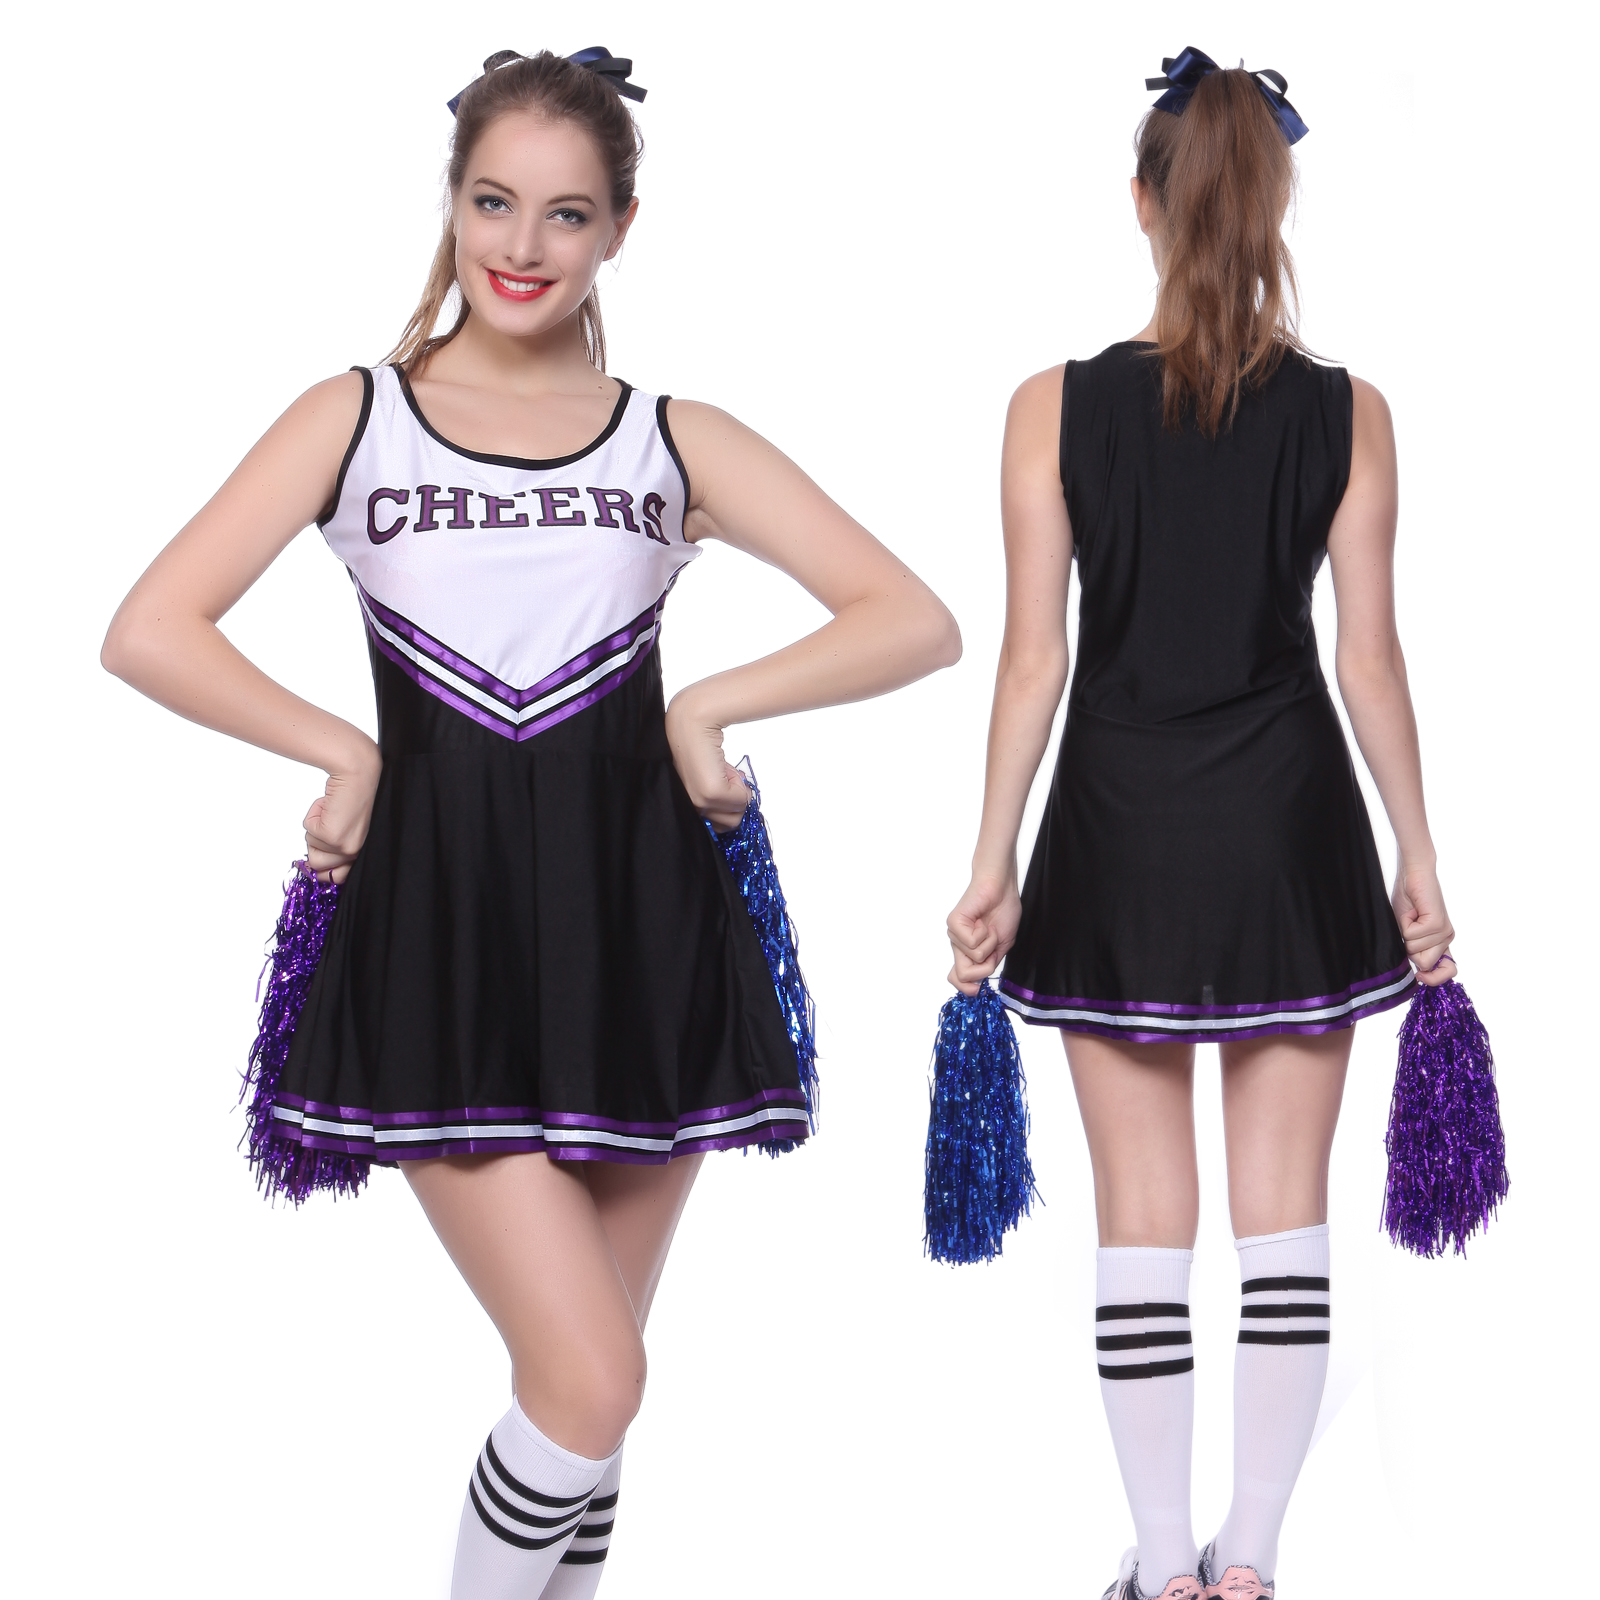 High School Musical Cheer Girl Cheerleader Uniform Costume Outfit w/ Pompoms Pro | eBay